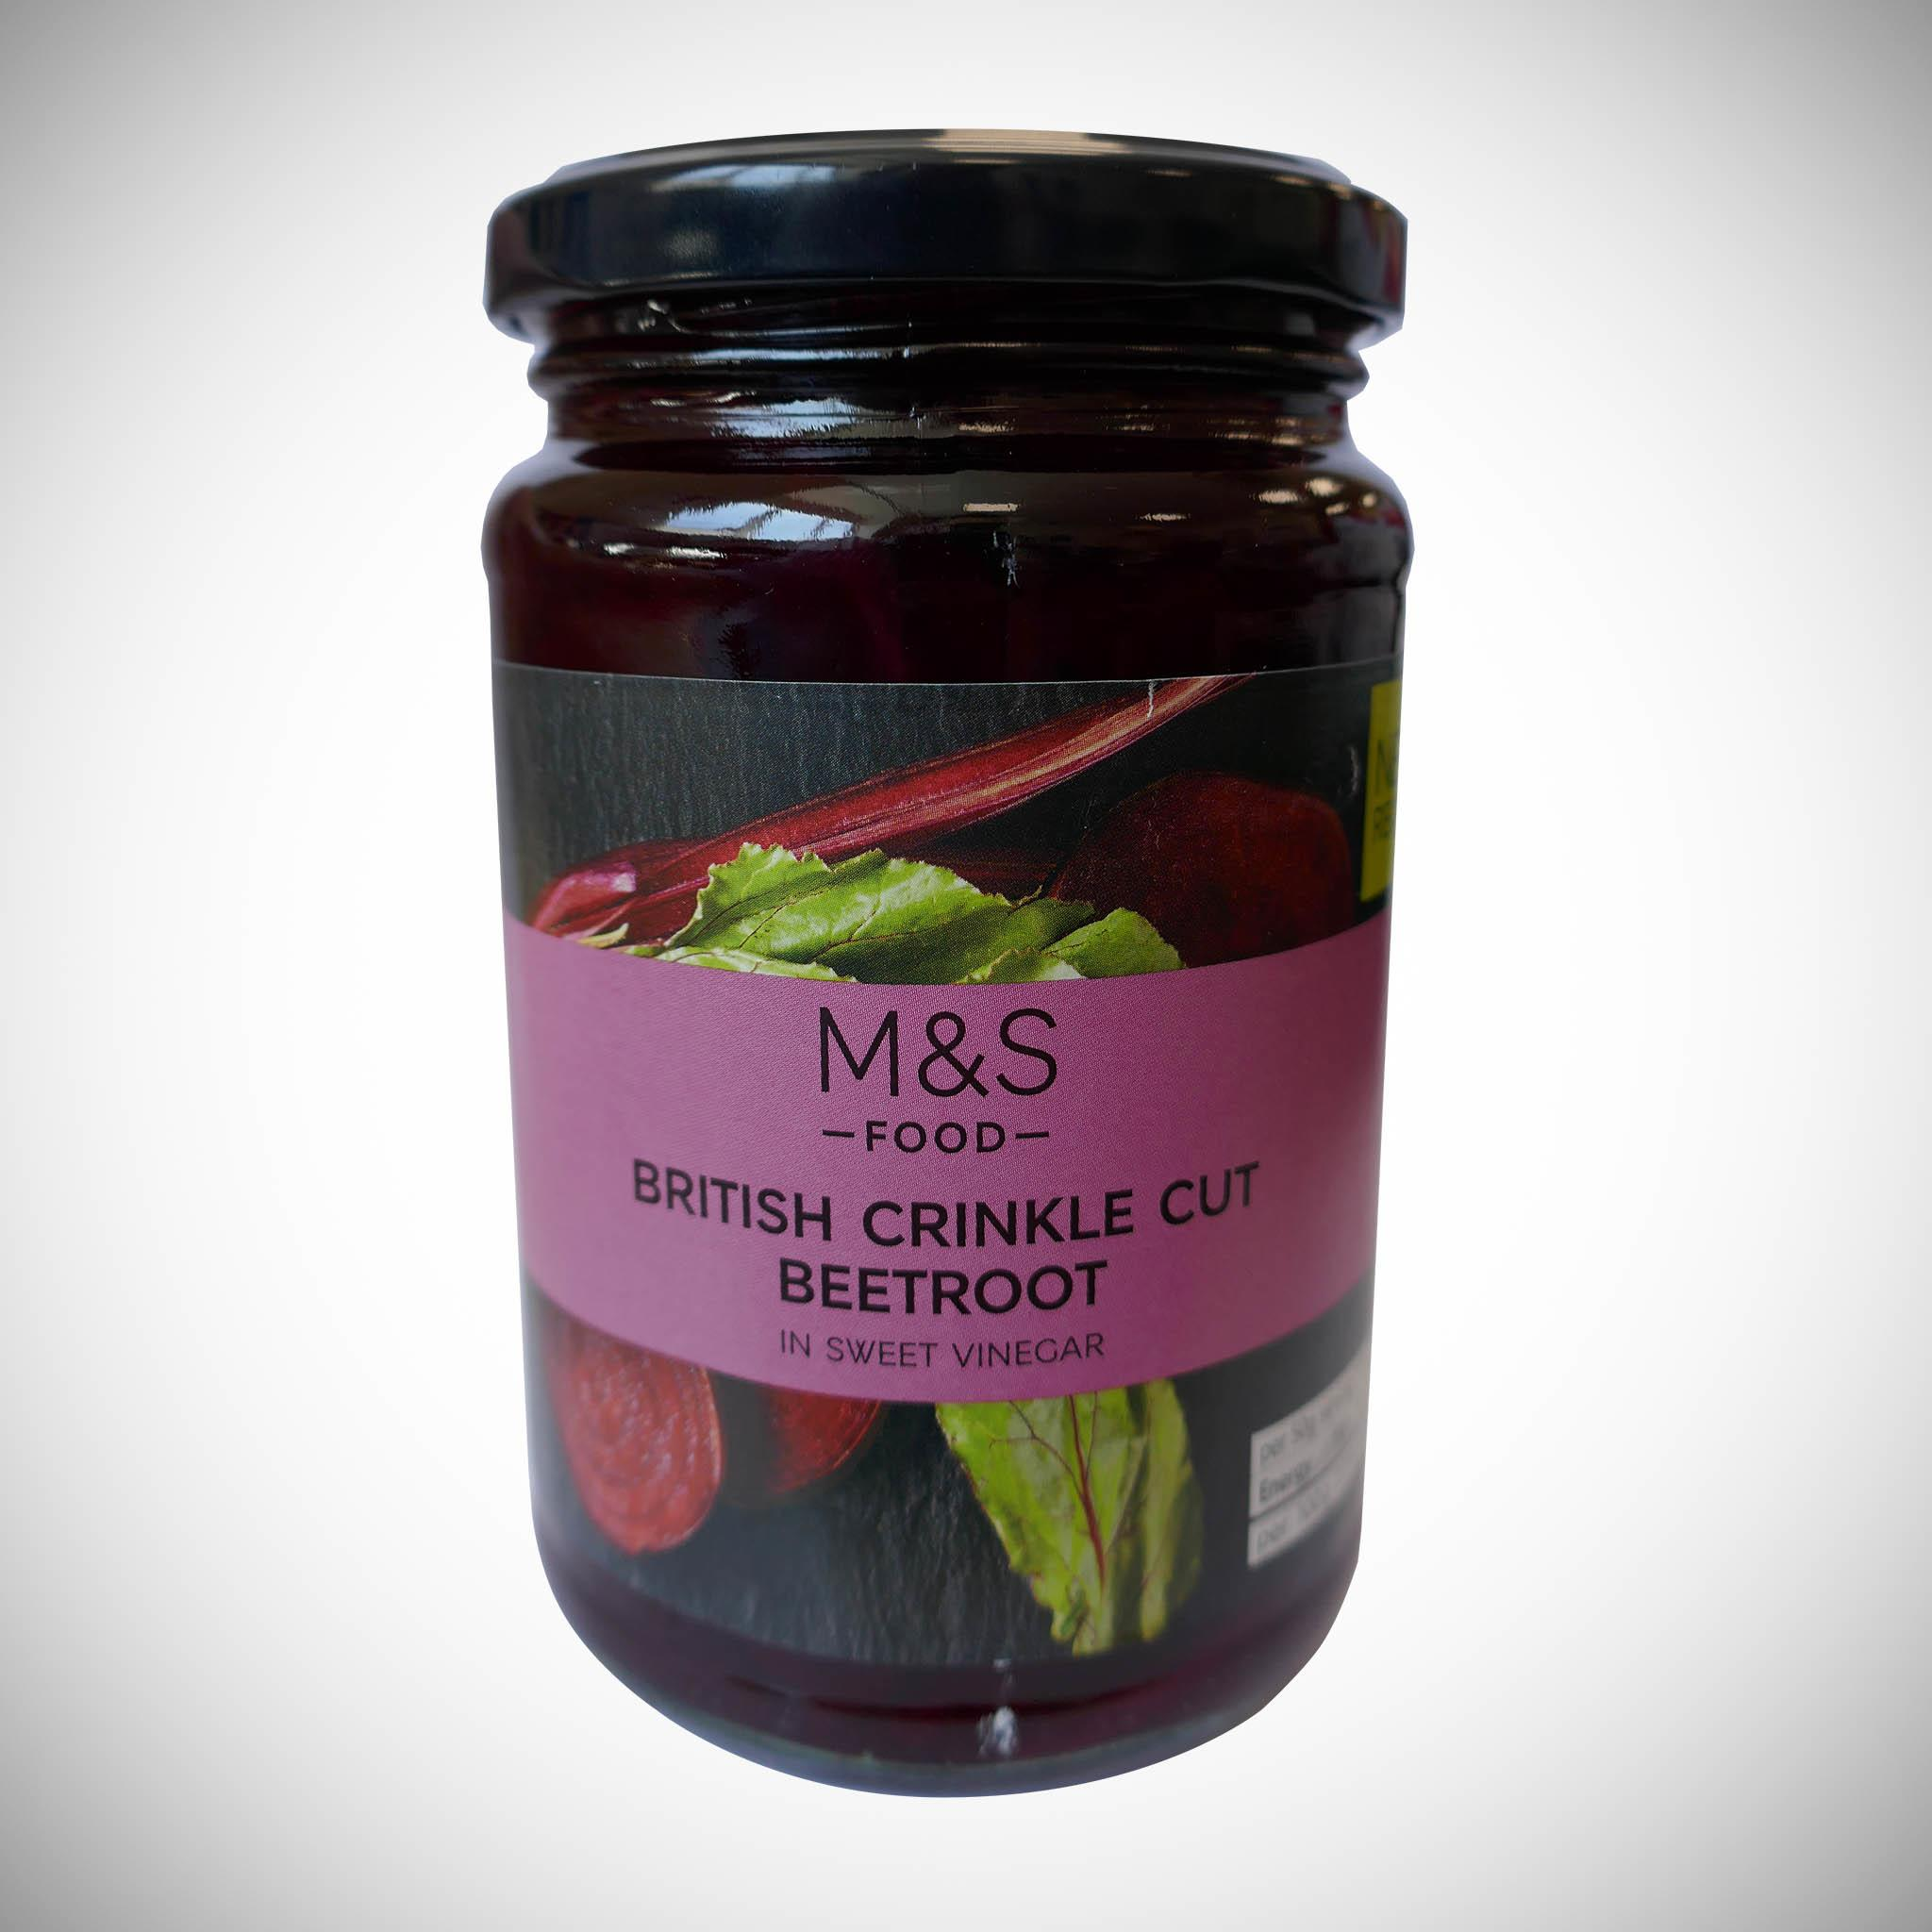 British Crinkle Cut Beetroot